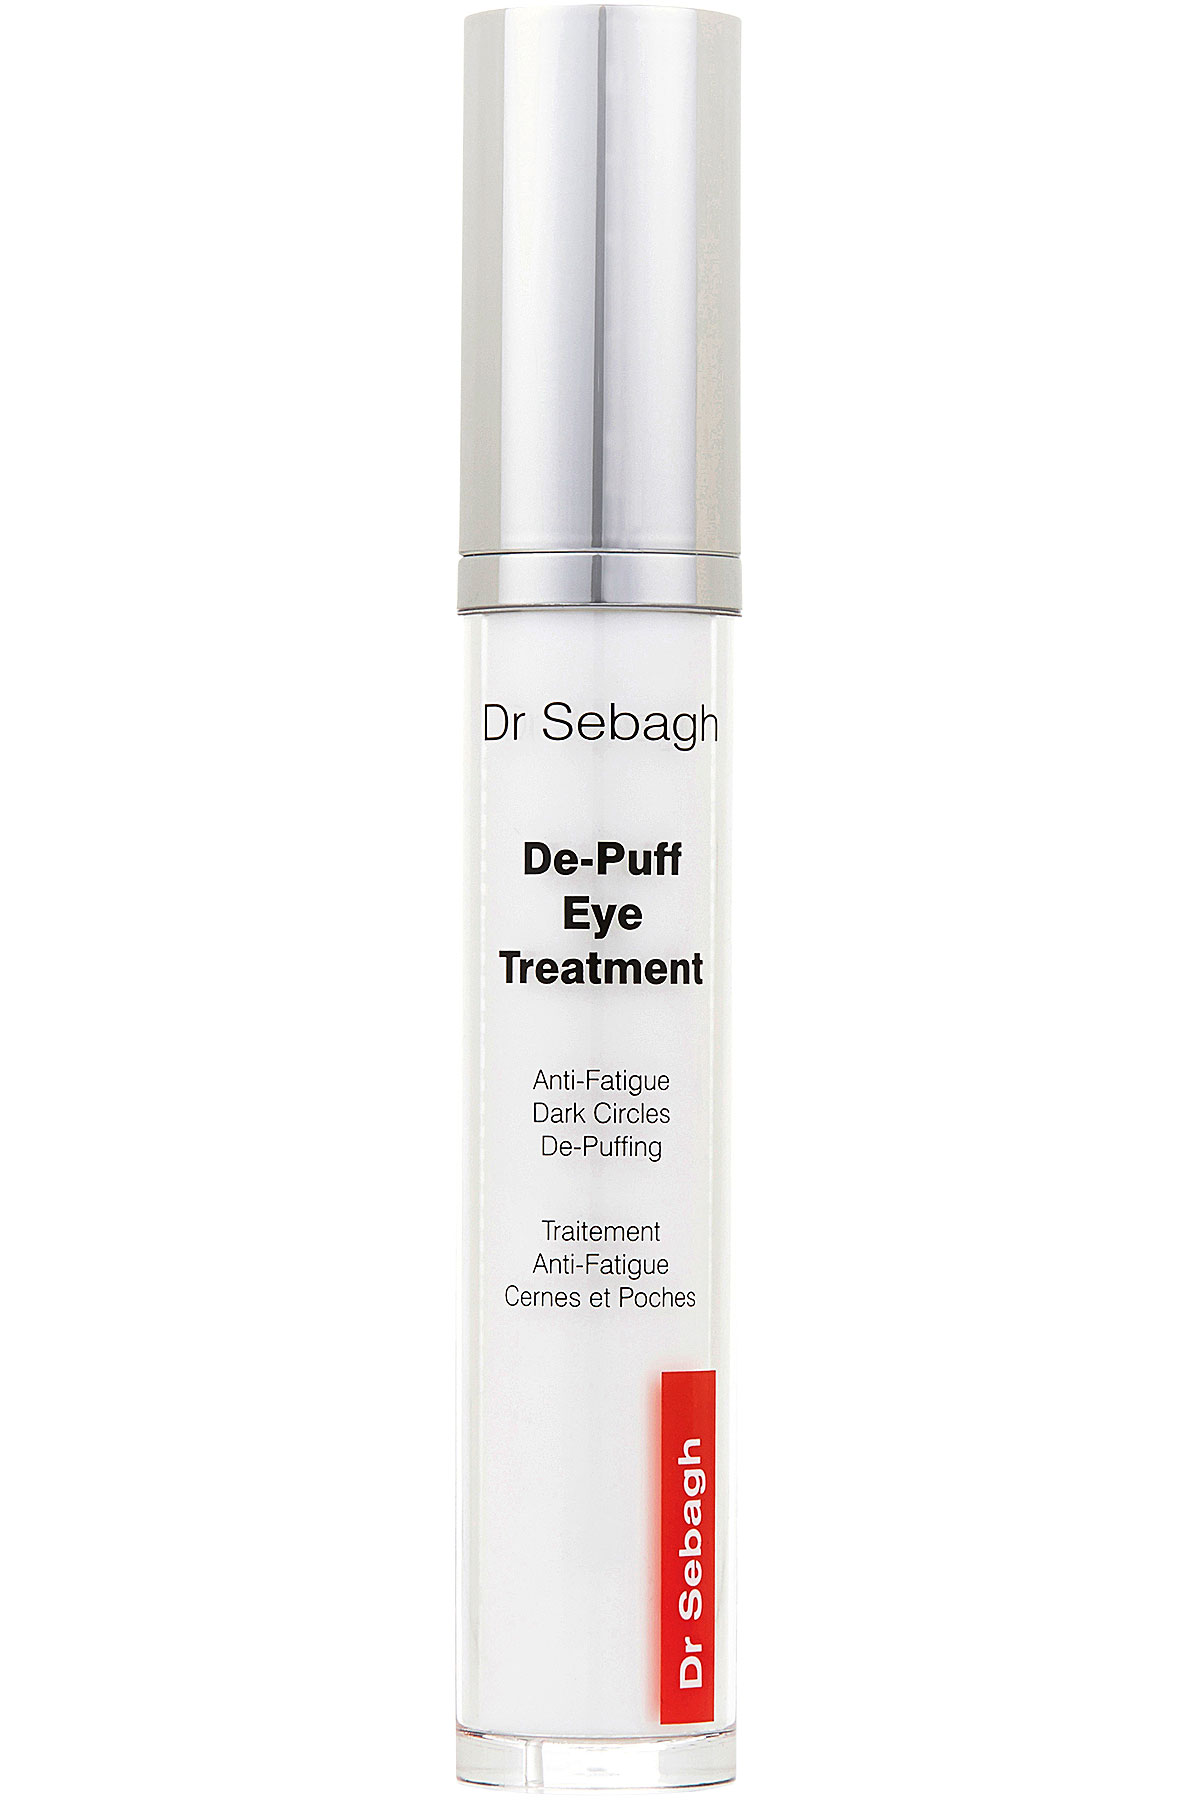 Dr Sebagh Beauty for Women, De-puff Eye Treatment - 15 Ml, 2019, 15 ml